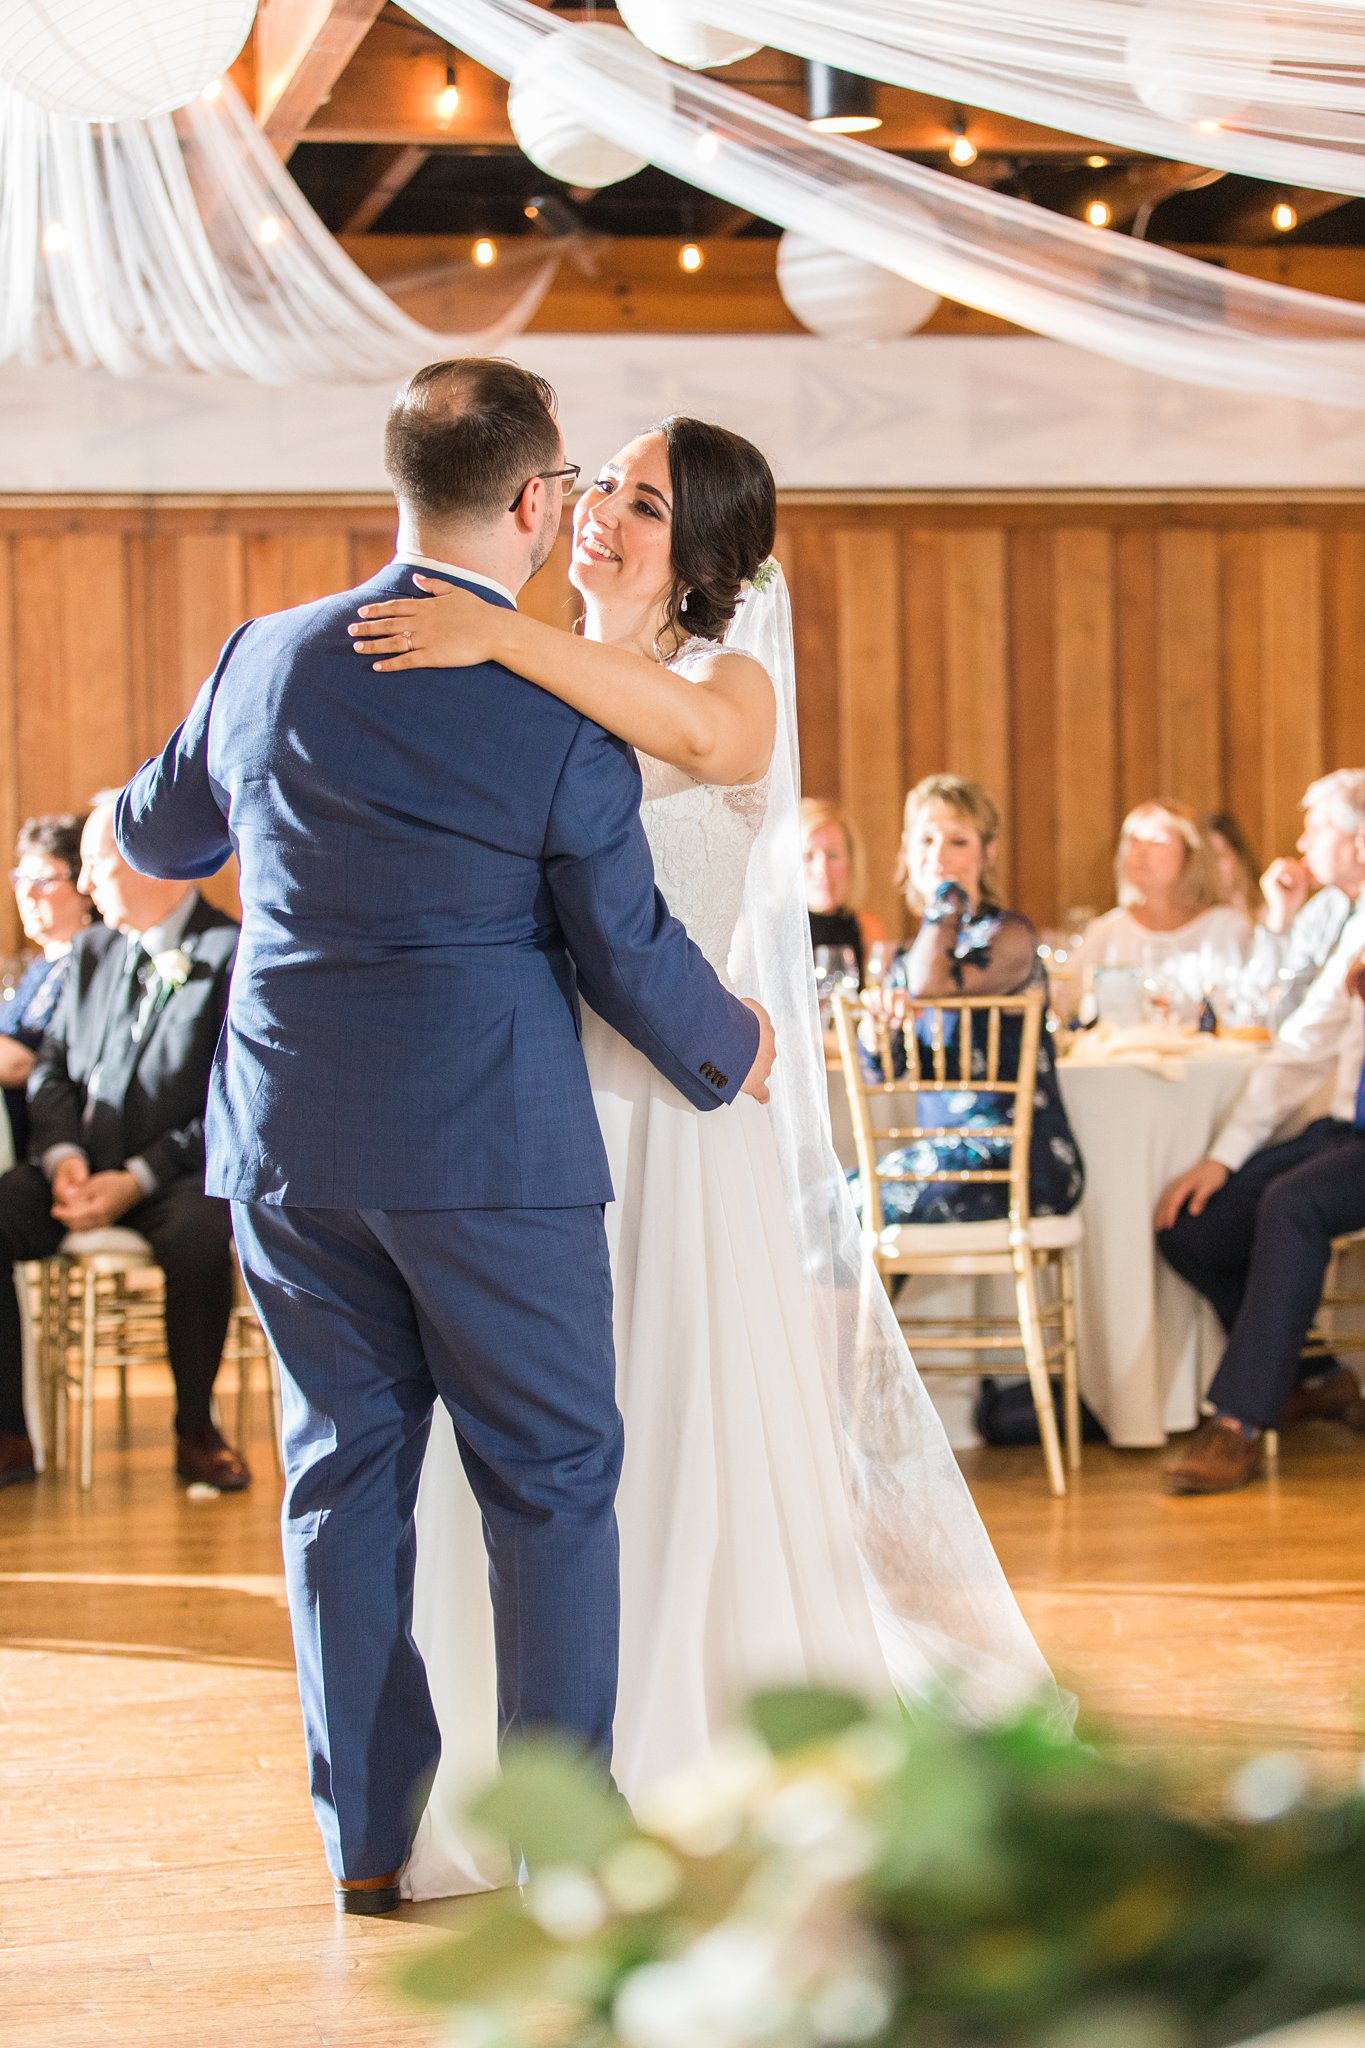 Bride and groom's first dance under twinkle lights, Britannia Yacht Club Wedding Photos, Amy Pinder Photography